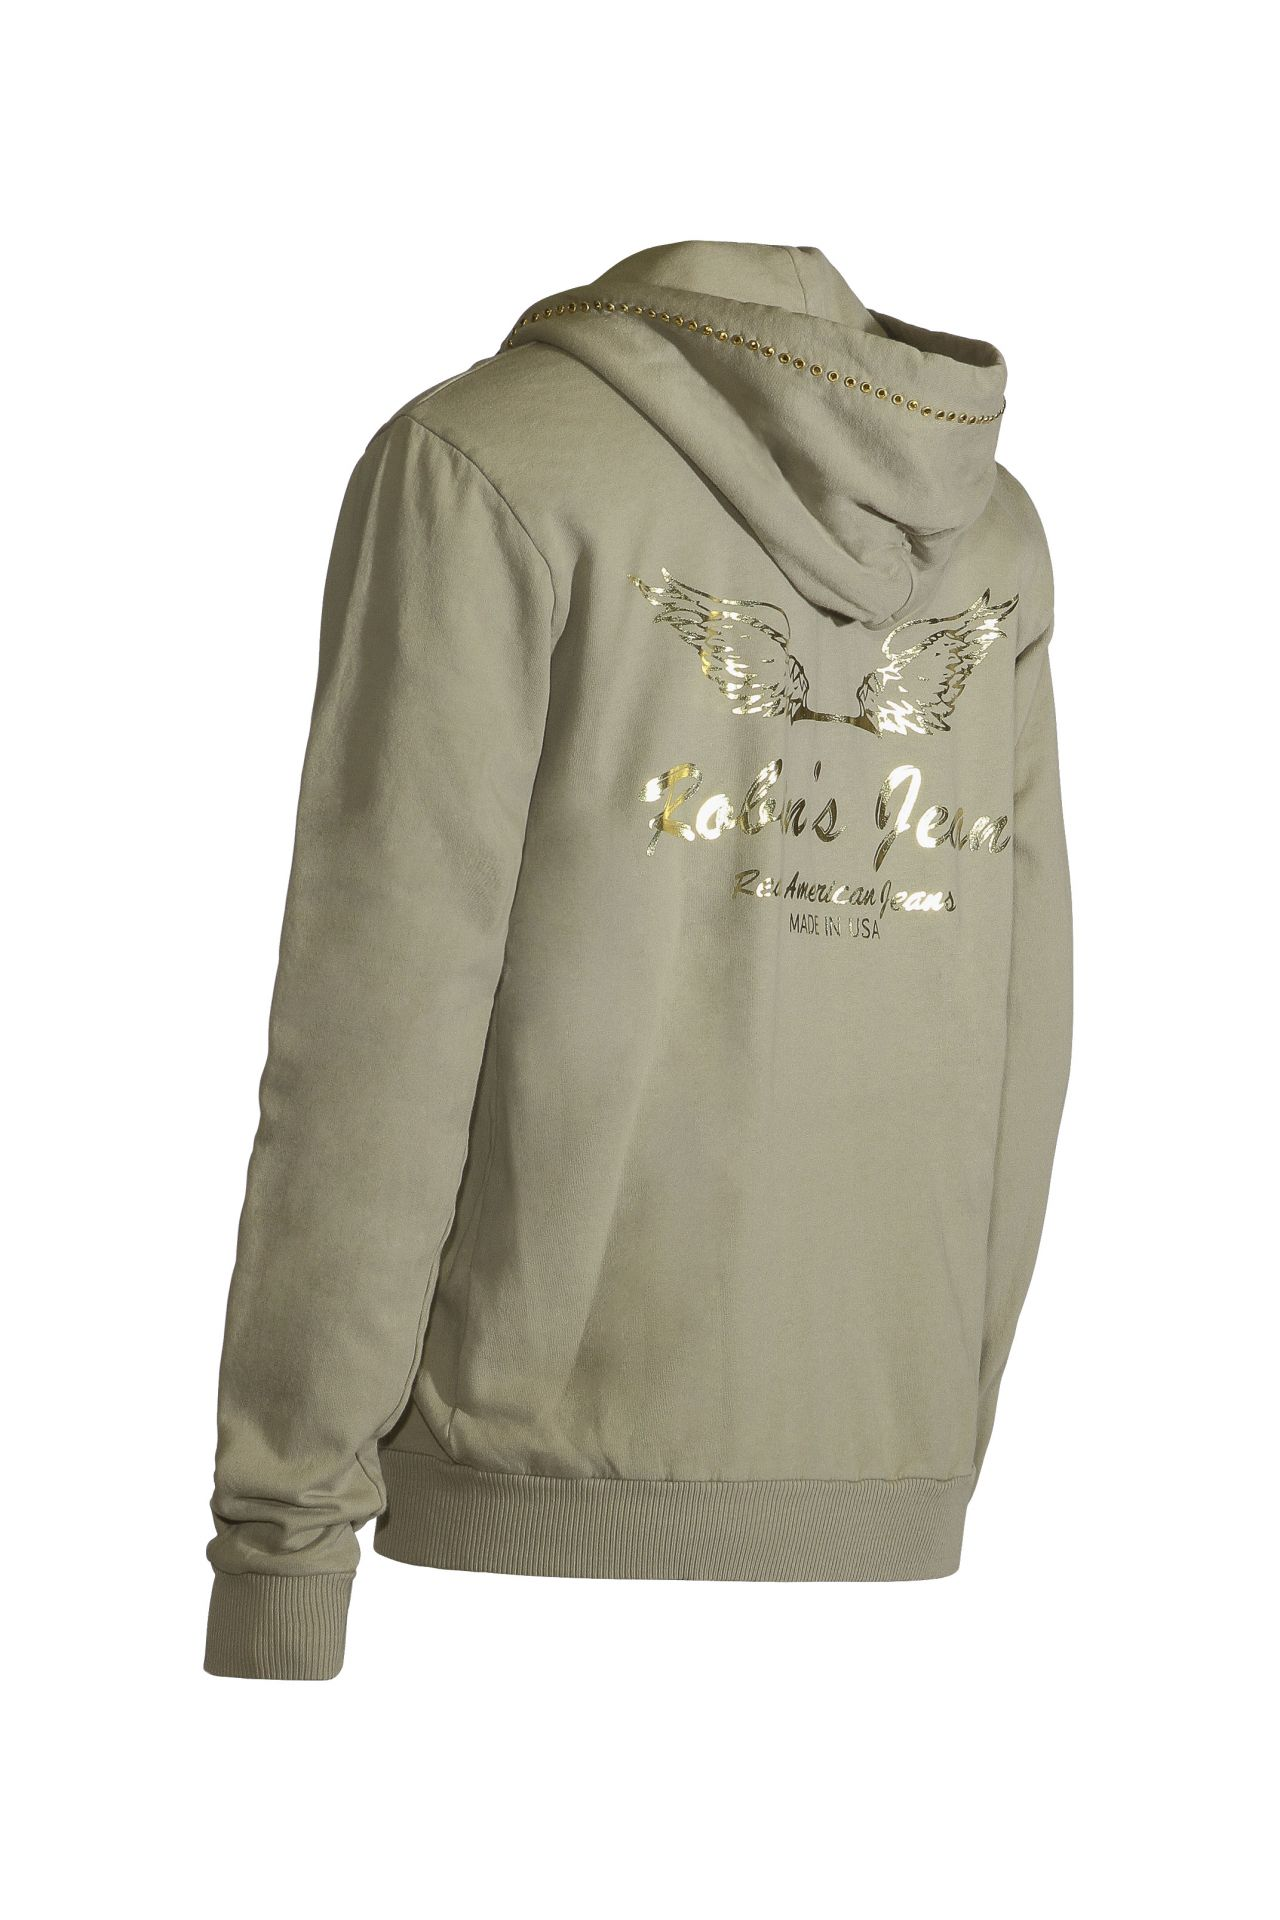 KHAKI HOOD WITH WINGS AND SW